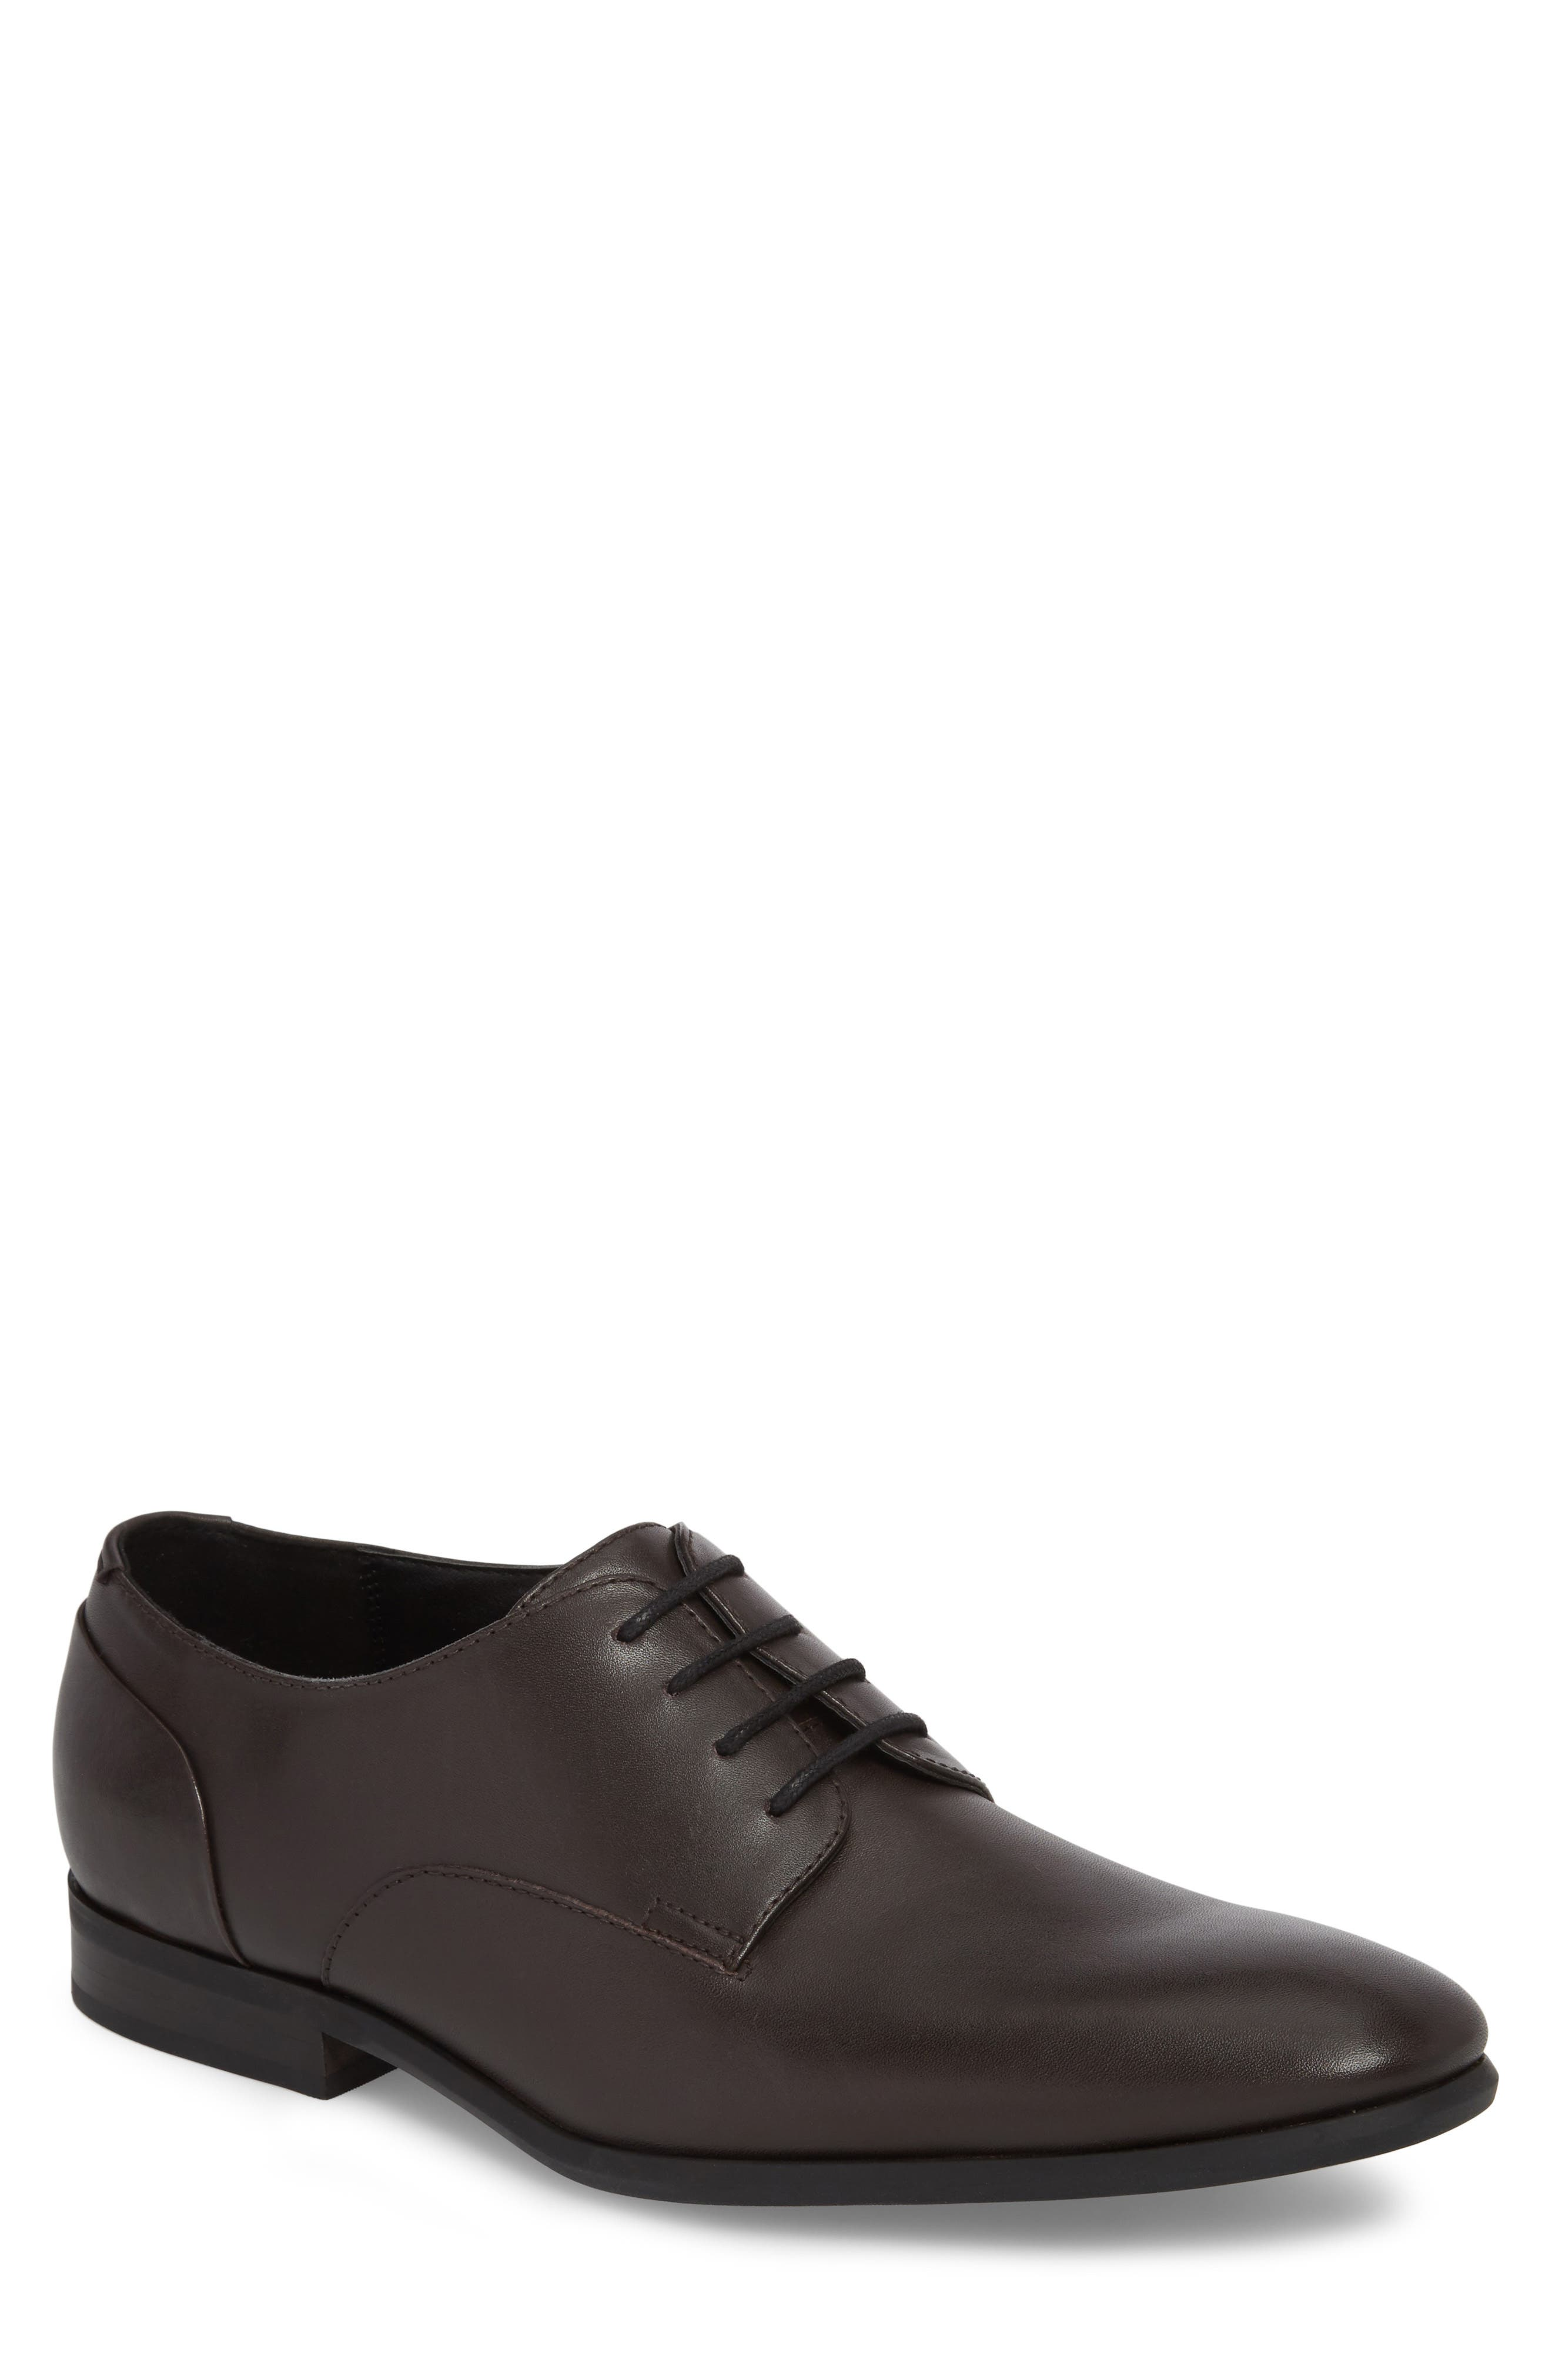 Lucca Plain Toe Derby,                         Main,                         color, Dark Brown Leather